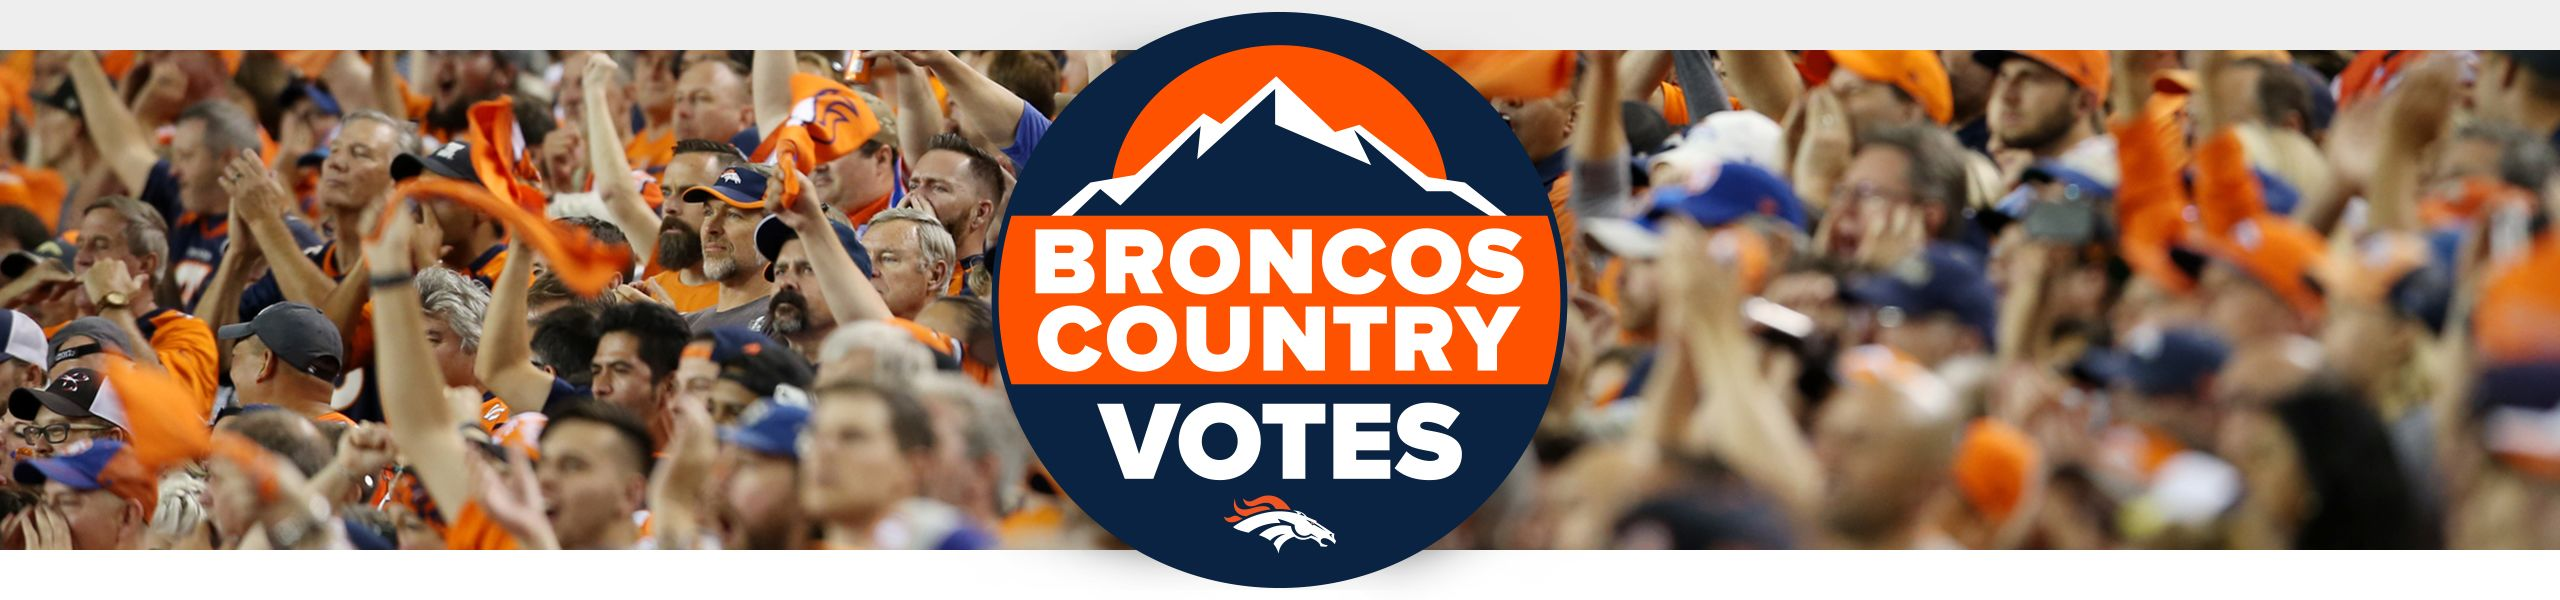 broncos_country_votes_hero_2560x600